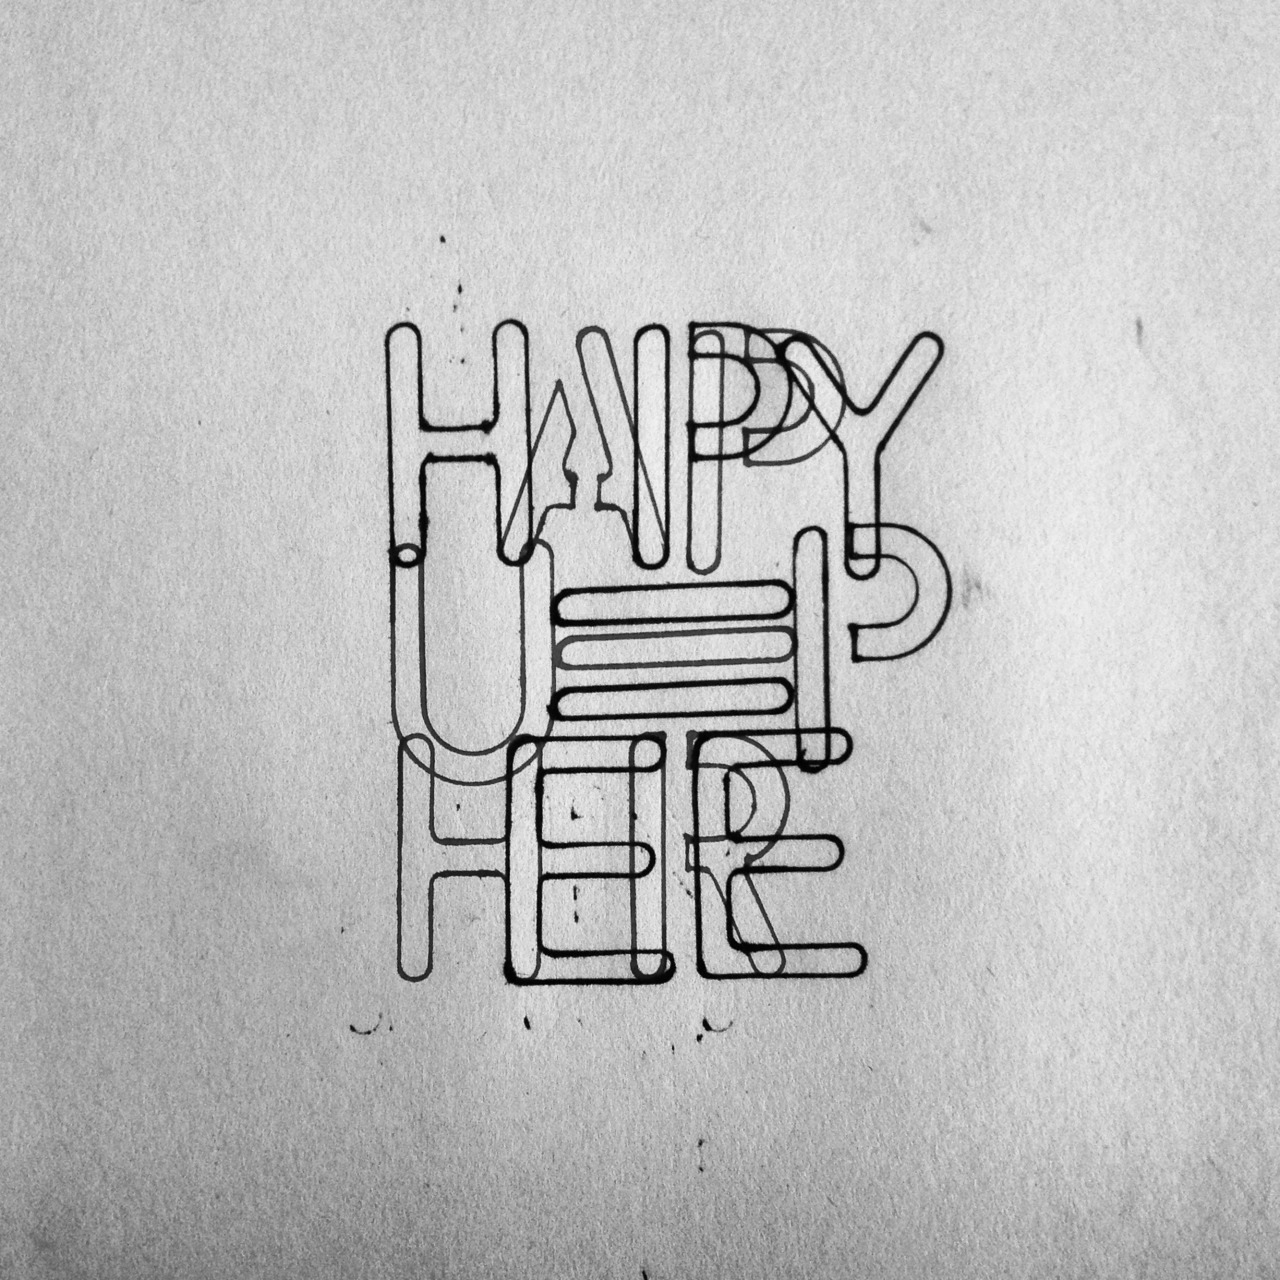 Mer typografi. Happy up here.